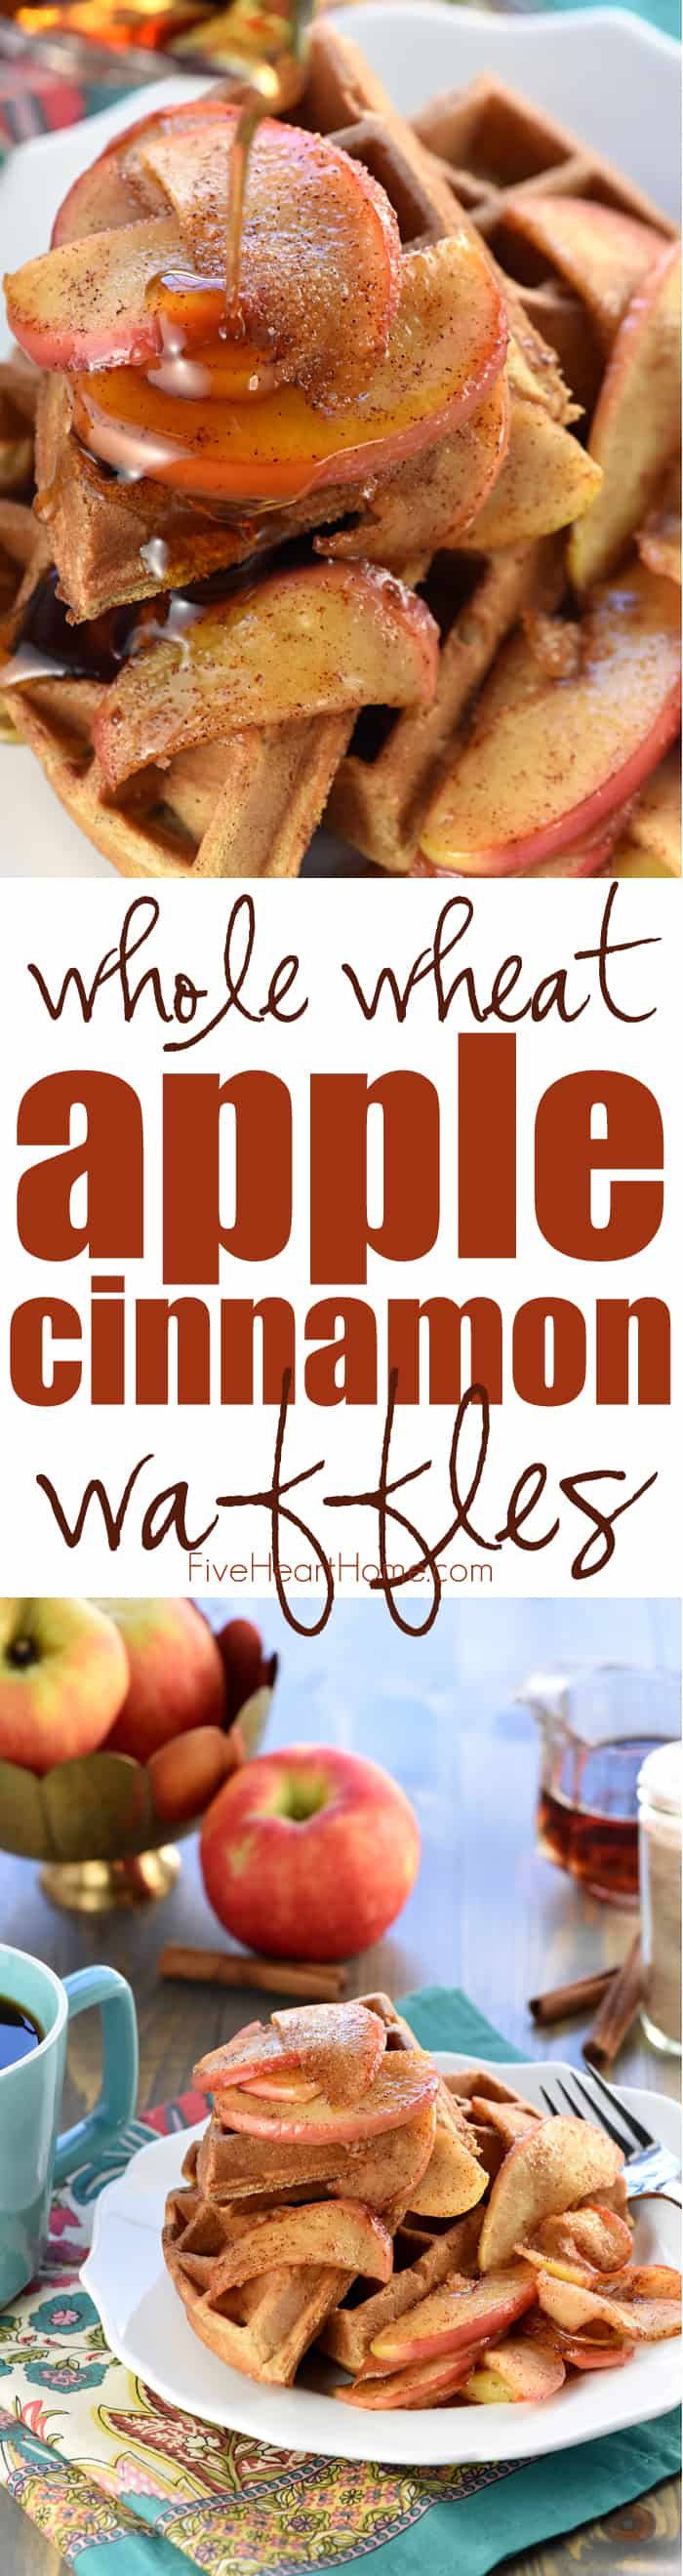 Whole Wheat Apple Cinnamon Waffles ~ crisp on the outside and fluffy on the inside, these waffles are perfectly spiced and bursting with chunks of sweet, tender apples...and as a bonus, they make your whole house smell heavenly as they bake! | FiveHeartHome.com